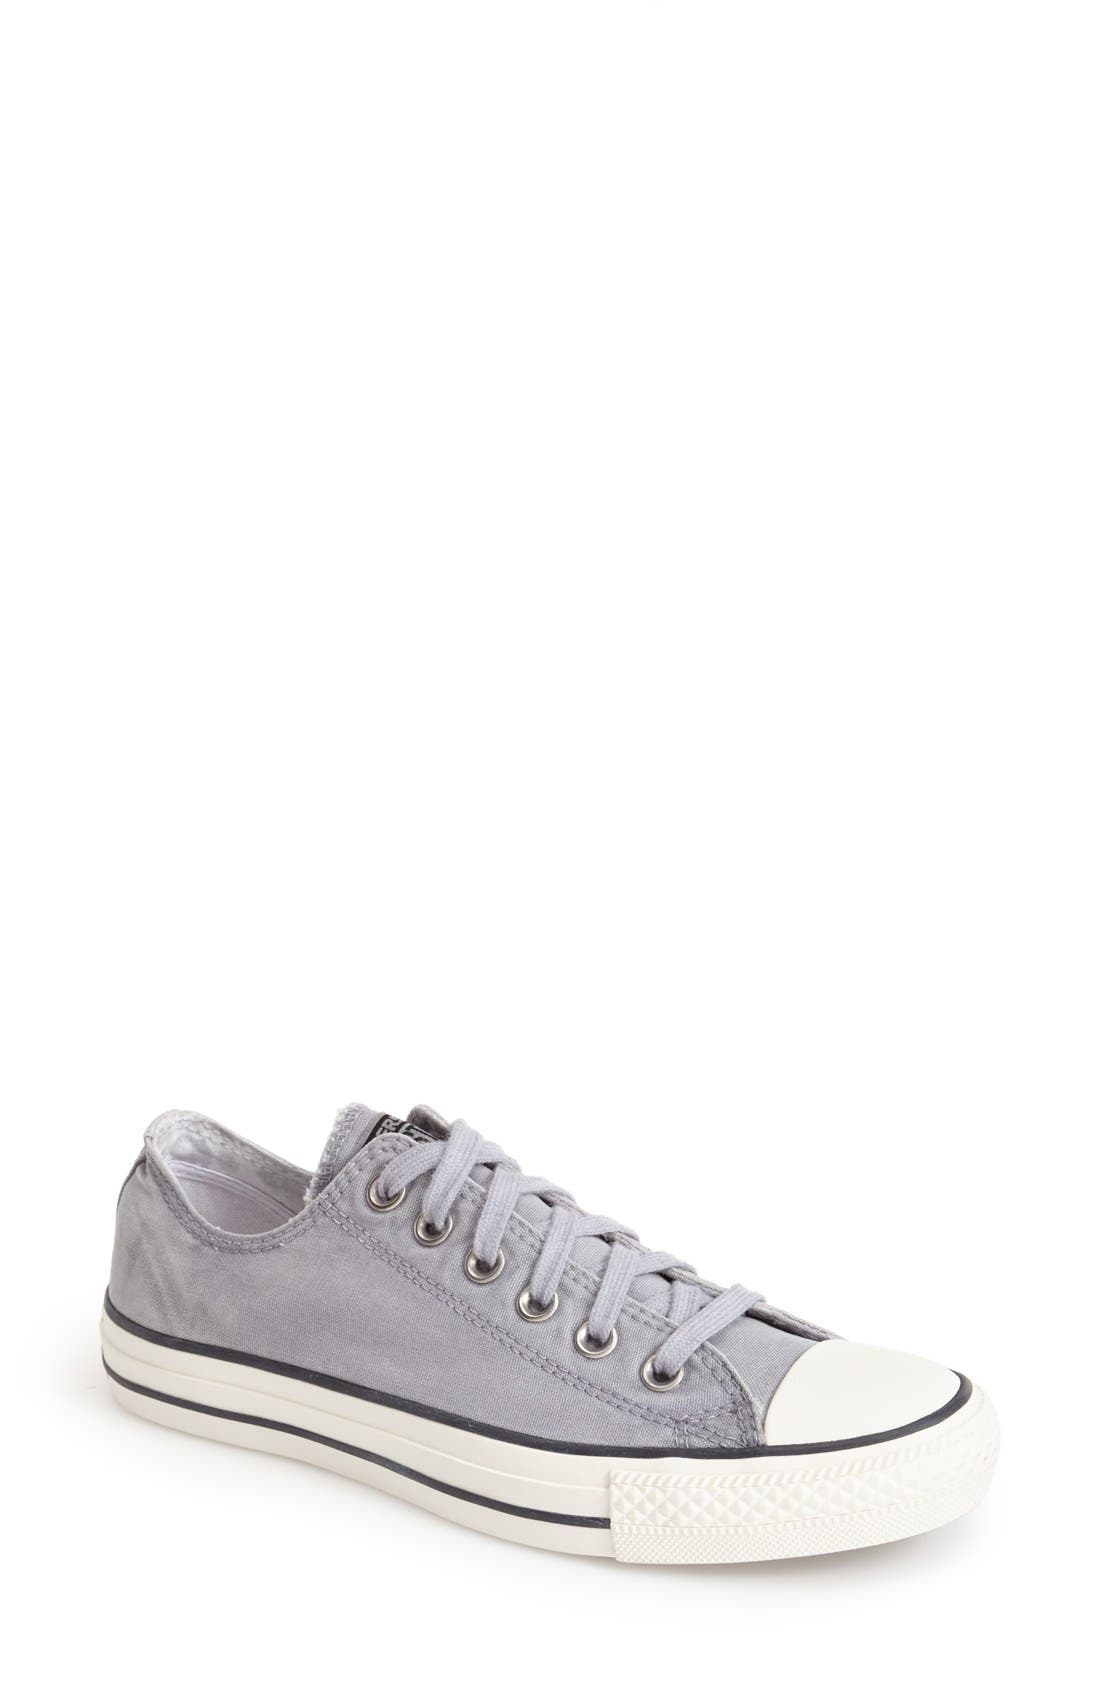 Alternate Image 1 Selected - Converse Chuck Taylor® All Star® 'White Wash Ox' Sneaker (Women)